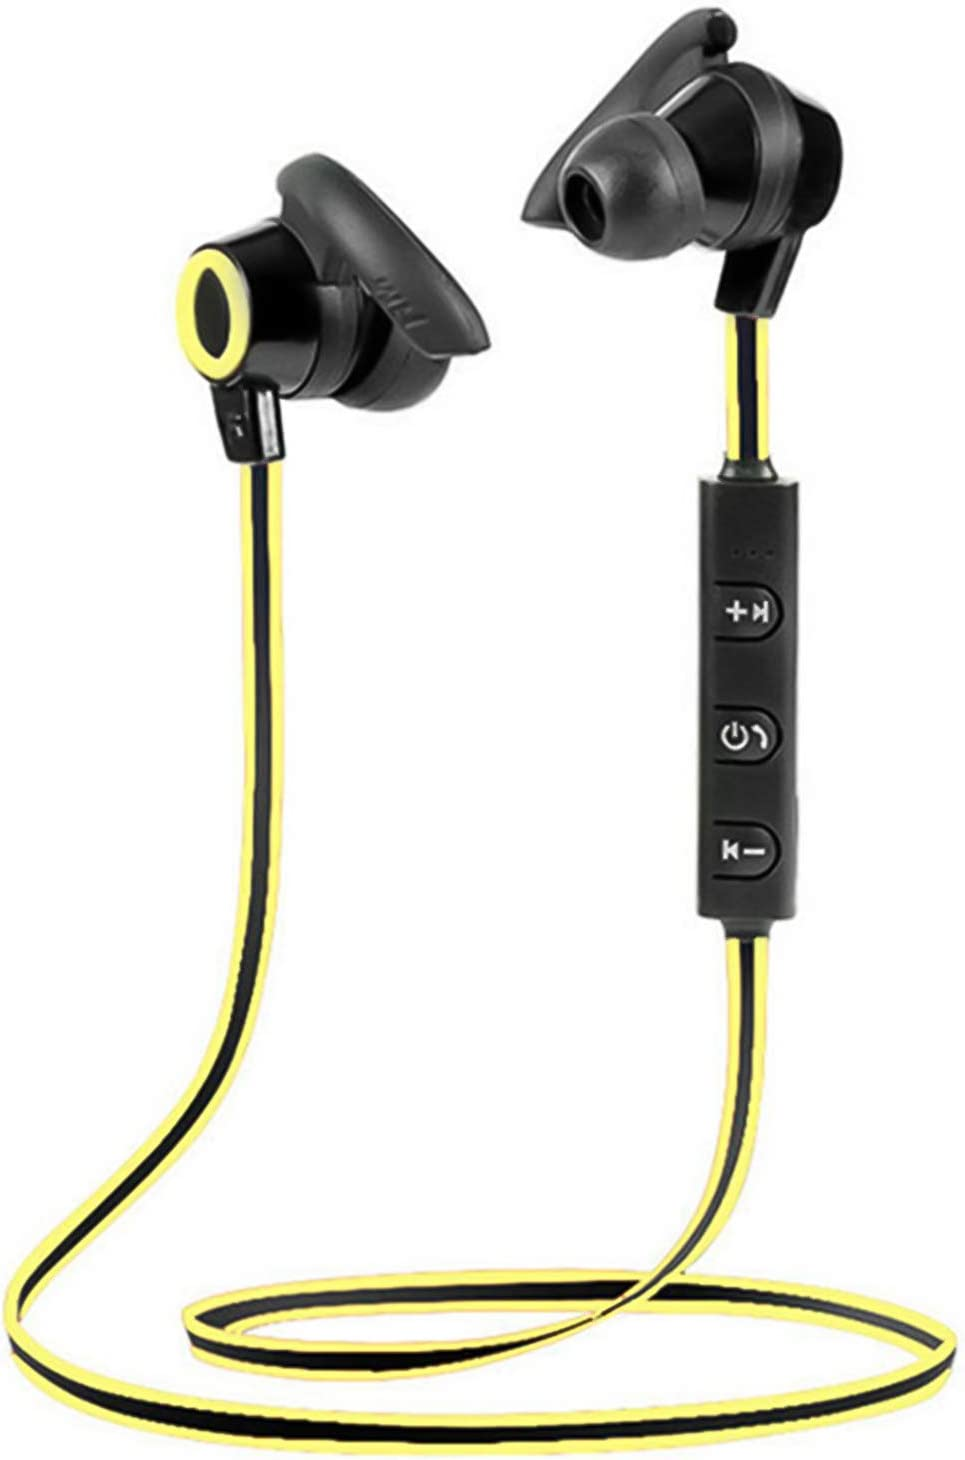 LUYANhapy9 Wireless Bluetooth 5.0 Earphones,Neckband Sports Headset with Microphone Noise Cancelling Stereo Bass Earbuds Rechargeable in-Ear Sport Earphone for Work, Home Office Black Yellow One Size